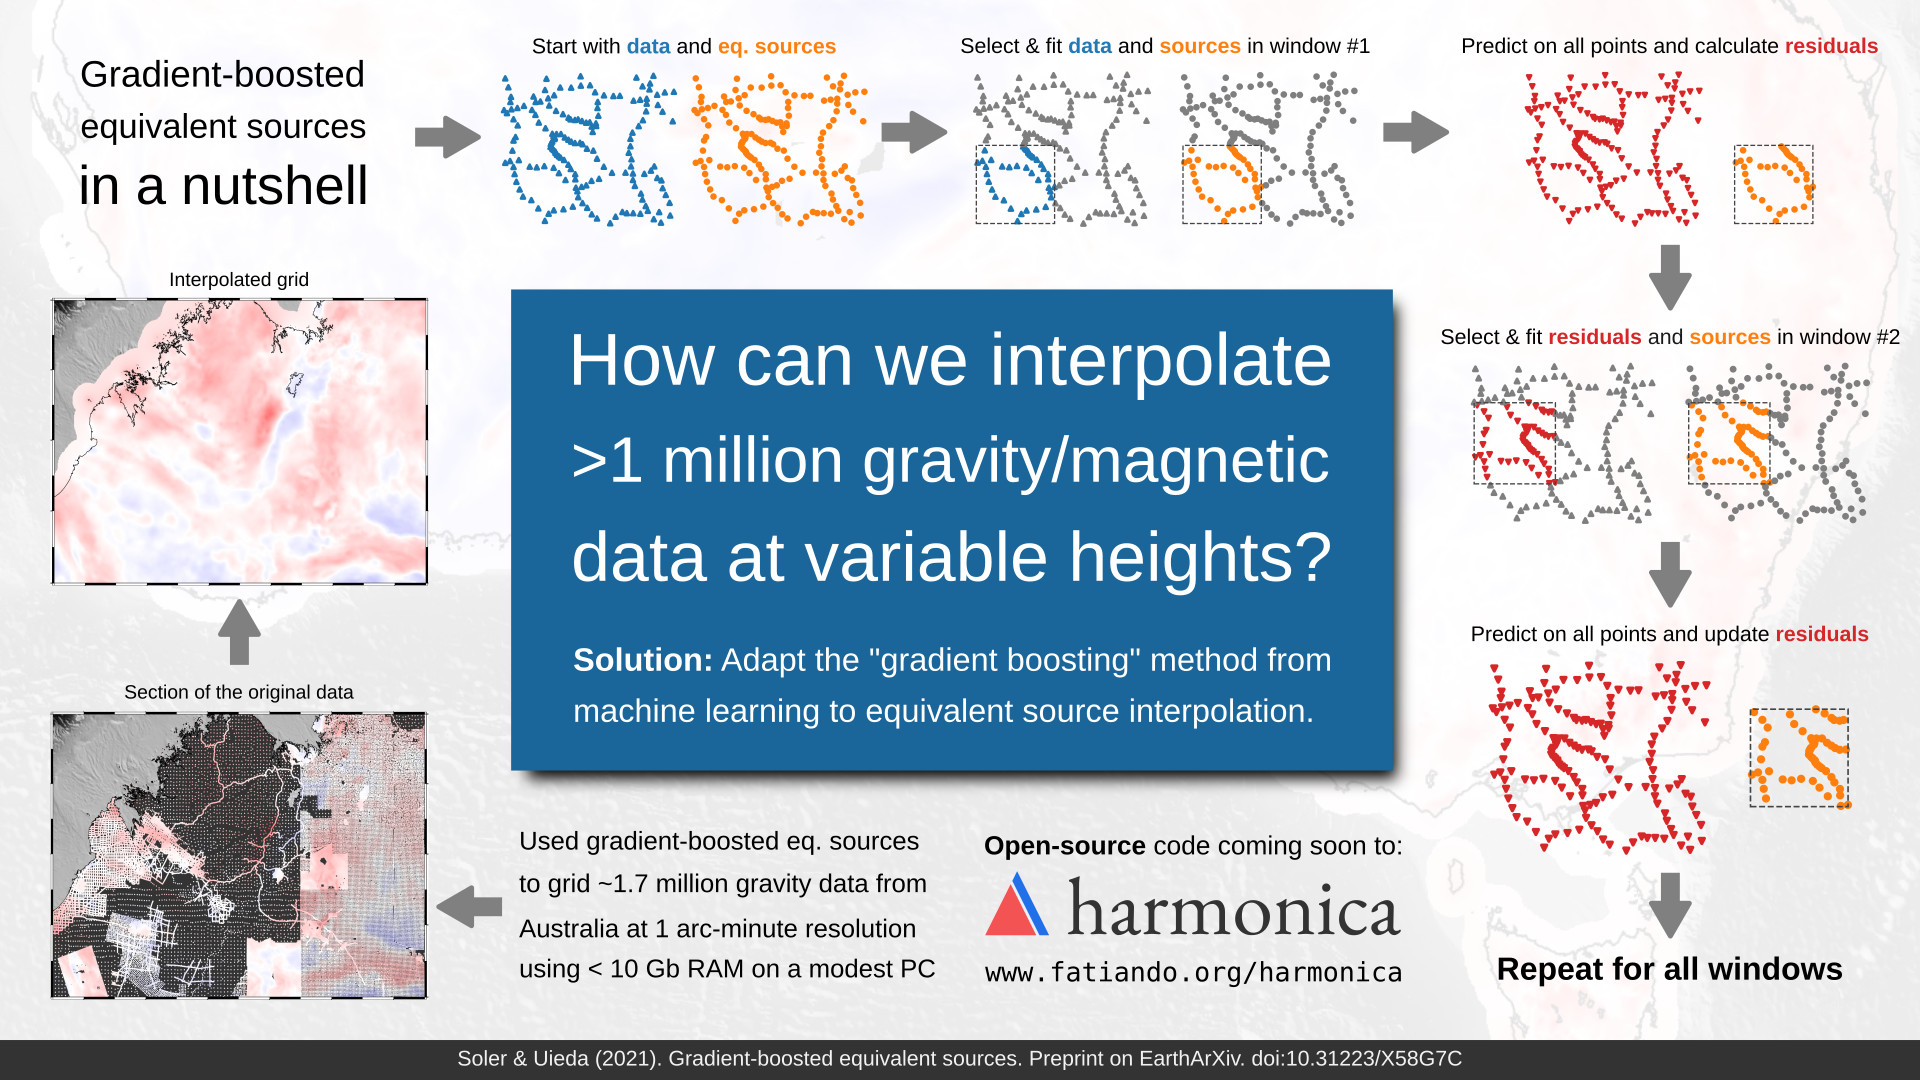 Visual abstract for the paper: How can we interpolate over 1 million gravity/magnetic data at variable heights? By adapting the gradient-boosting method from machine learning to equivalent source processing. Includes a diagram of the algorithm and an interpolation example showing that the method is able to fit large amounts of data and still retain spectral content of the data.